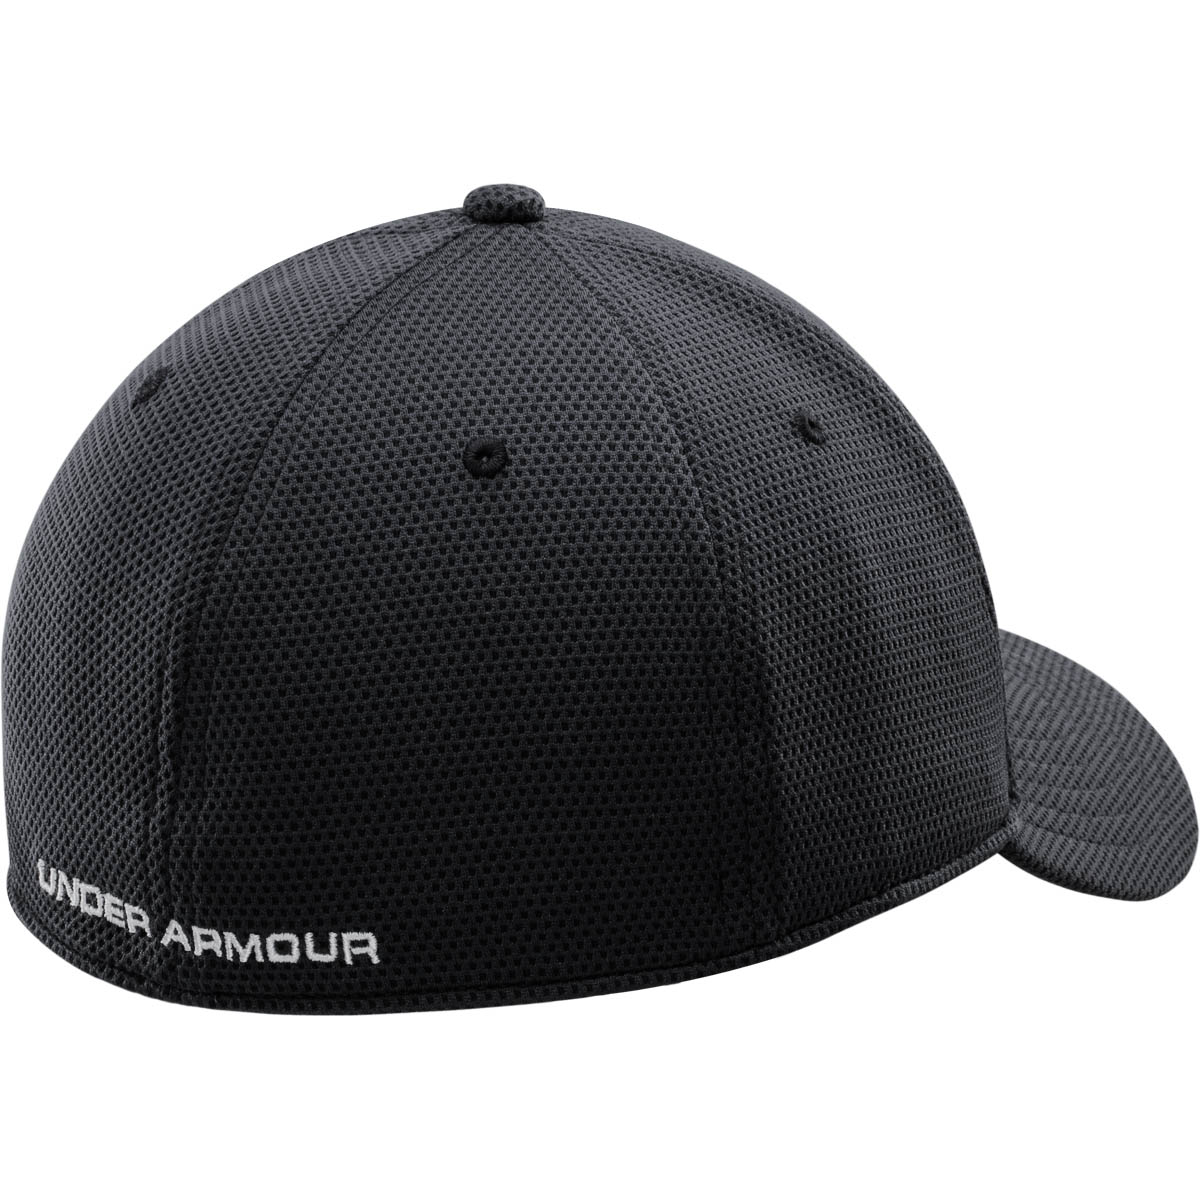 Under Armour Mens UA Blitzing II Stretch Fit Cap Sport Performance ... 3a28384453d